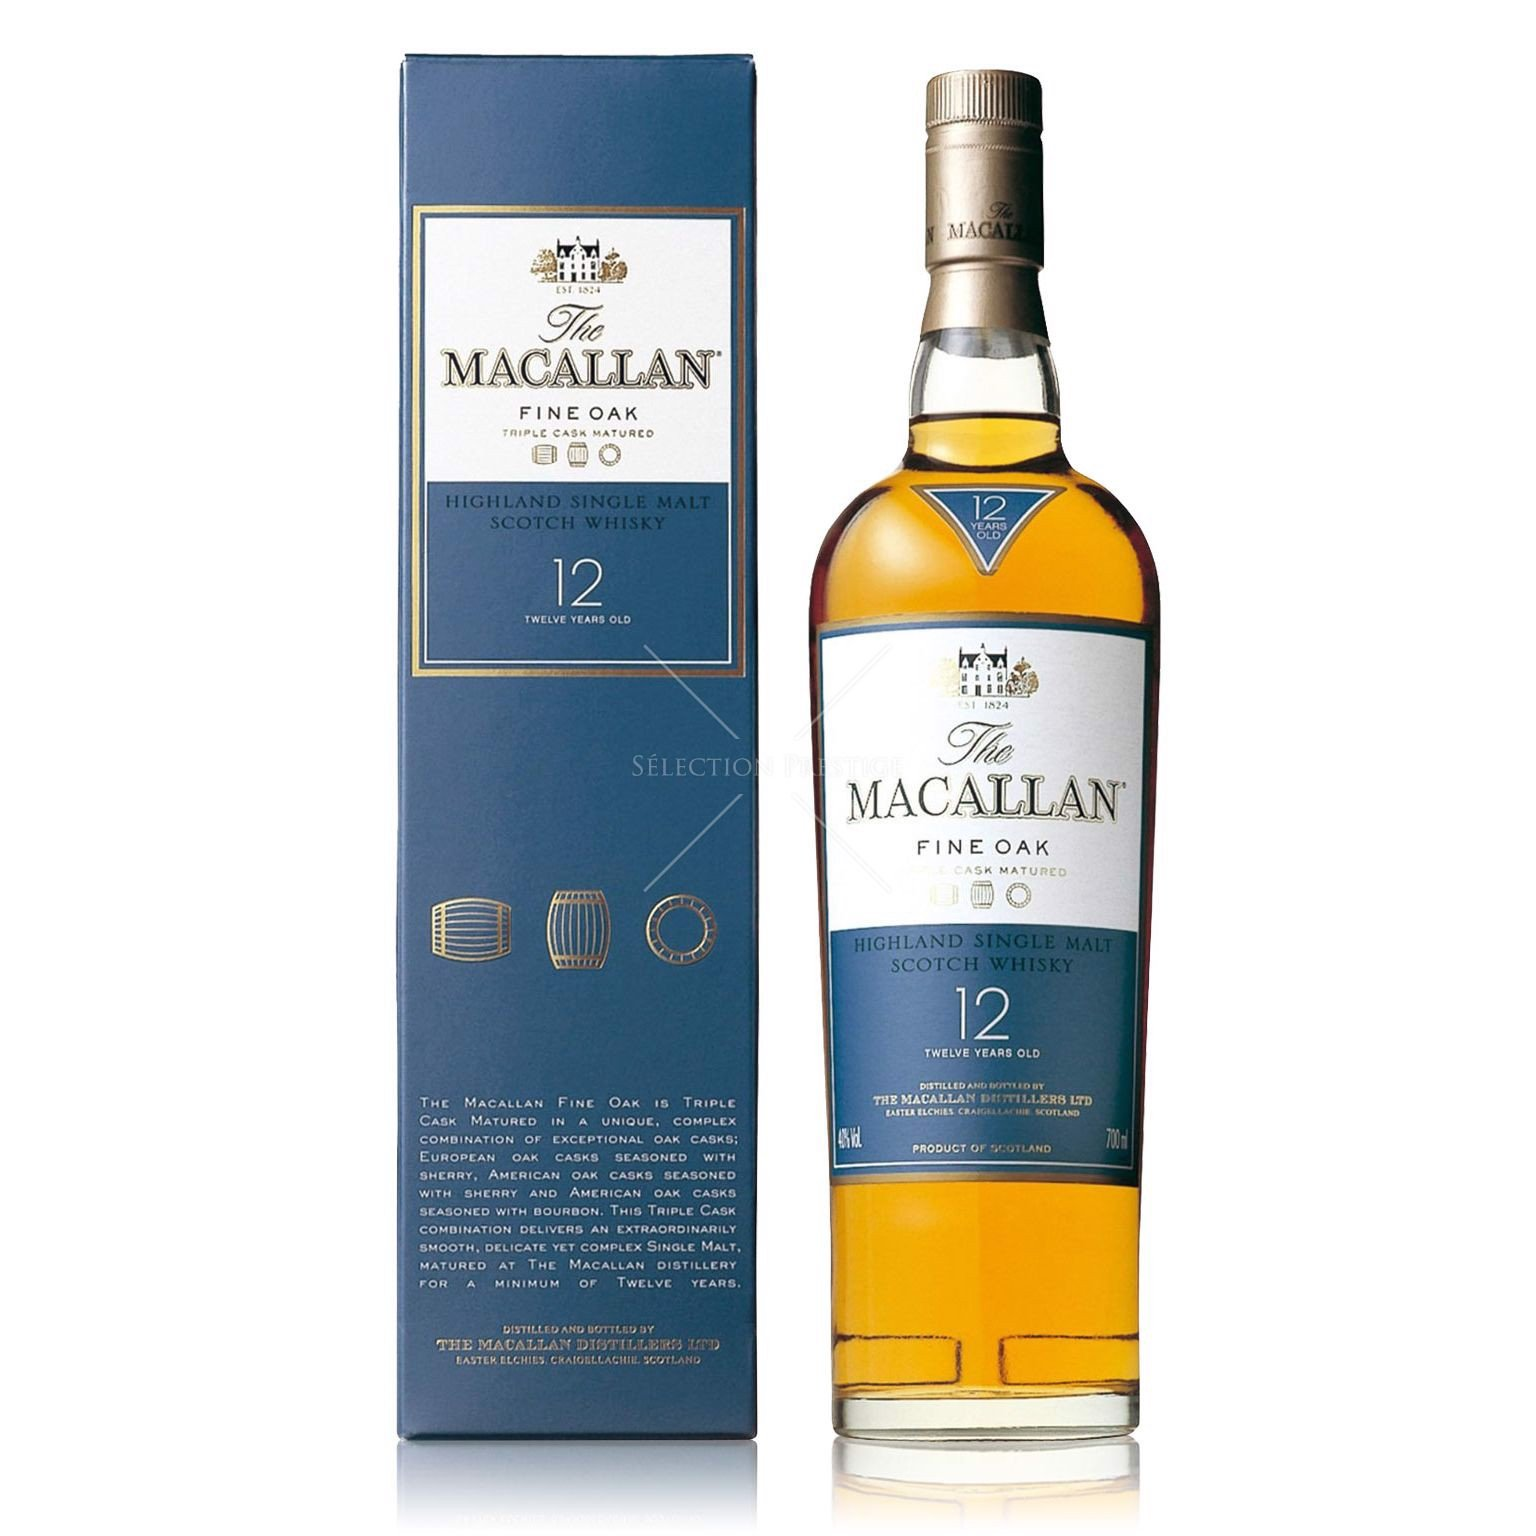 Rượu The Macallan Fine Oak 12 Years Old 0.7L (40% Vol.)